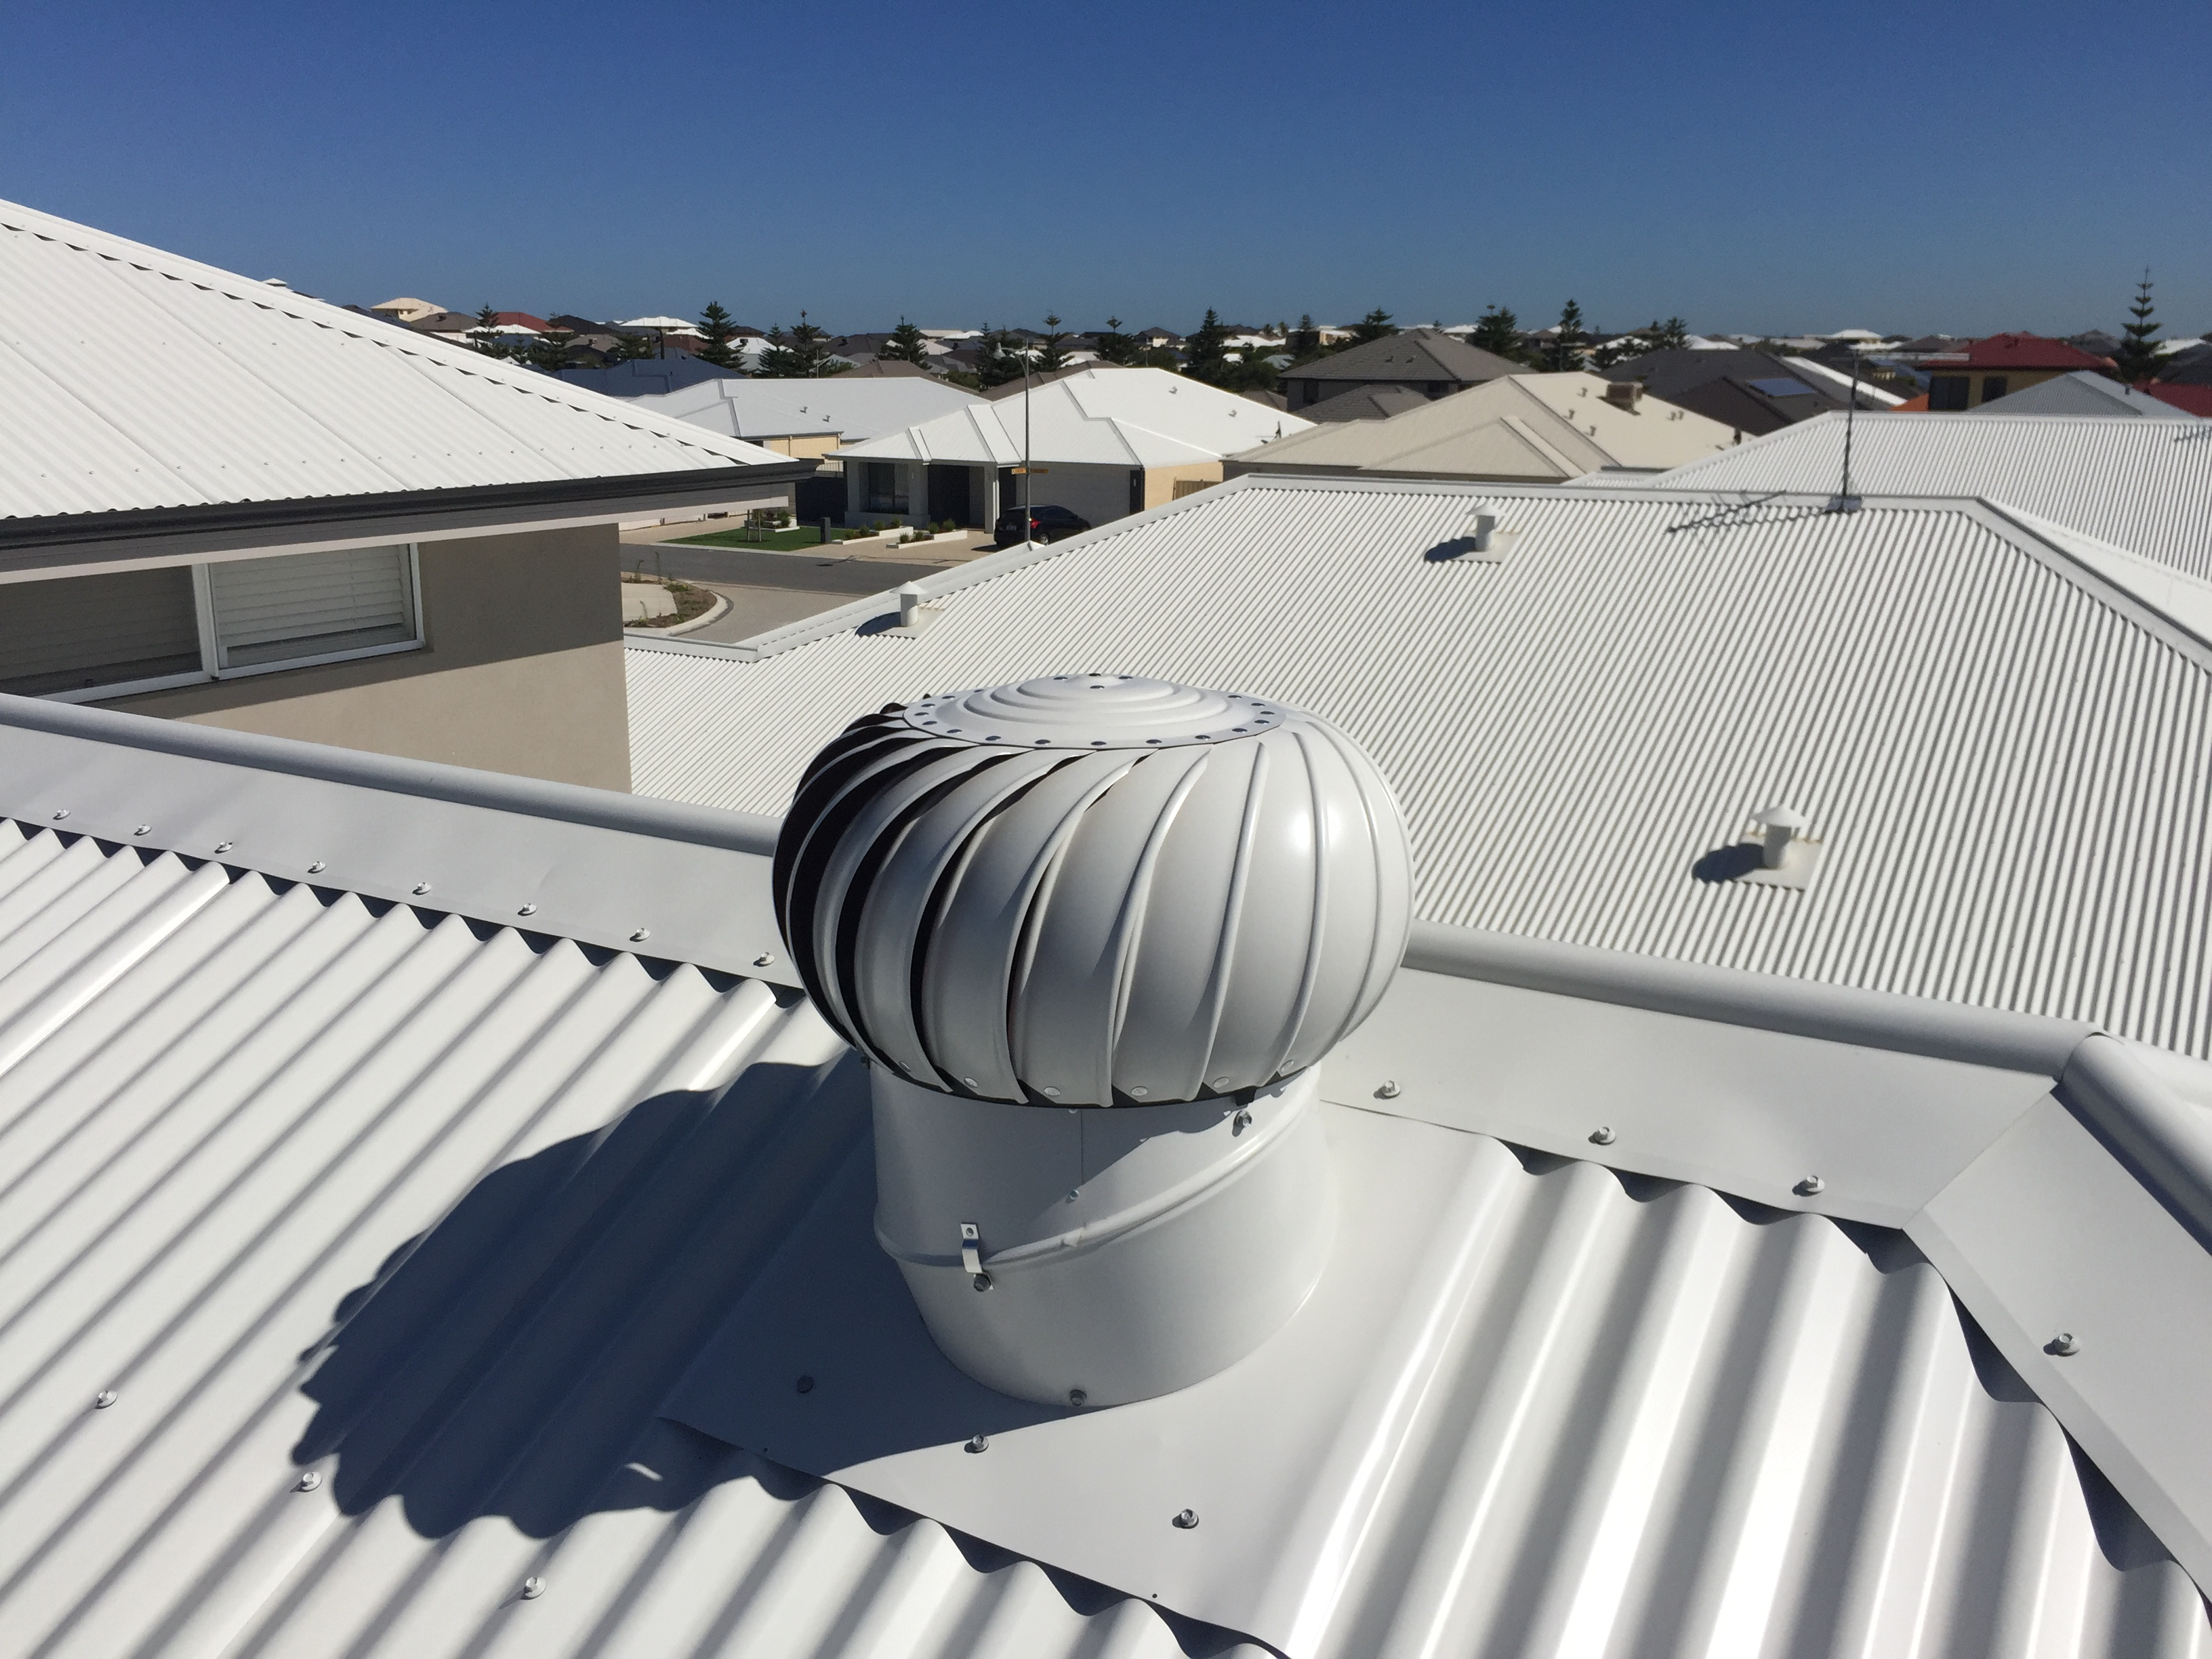 Whirlybirds And Roof Vents Wa Whirlybirds Gallery Of